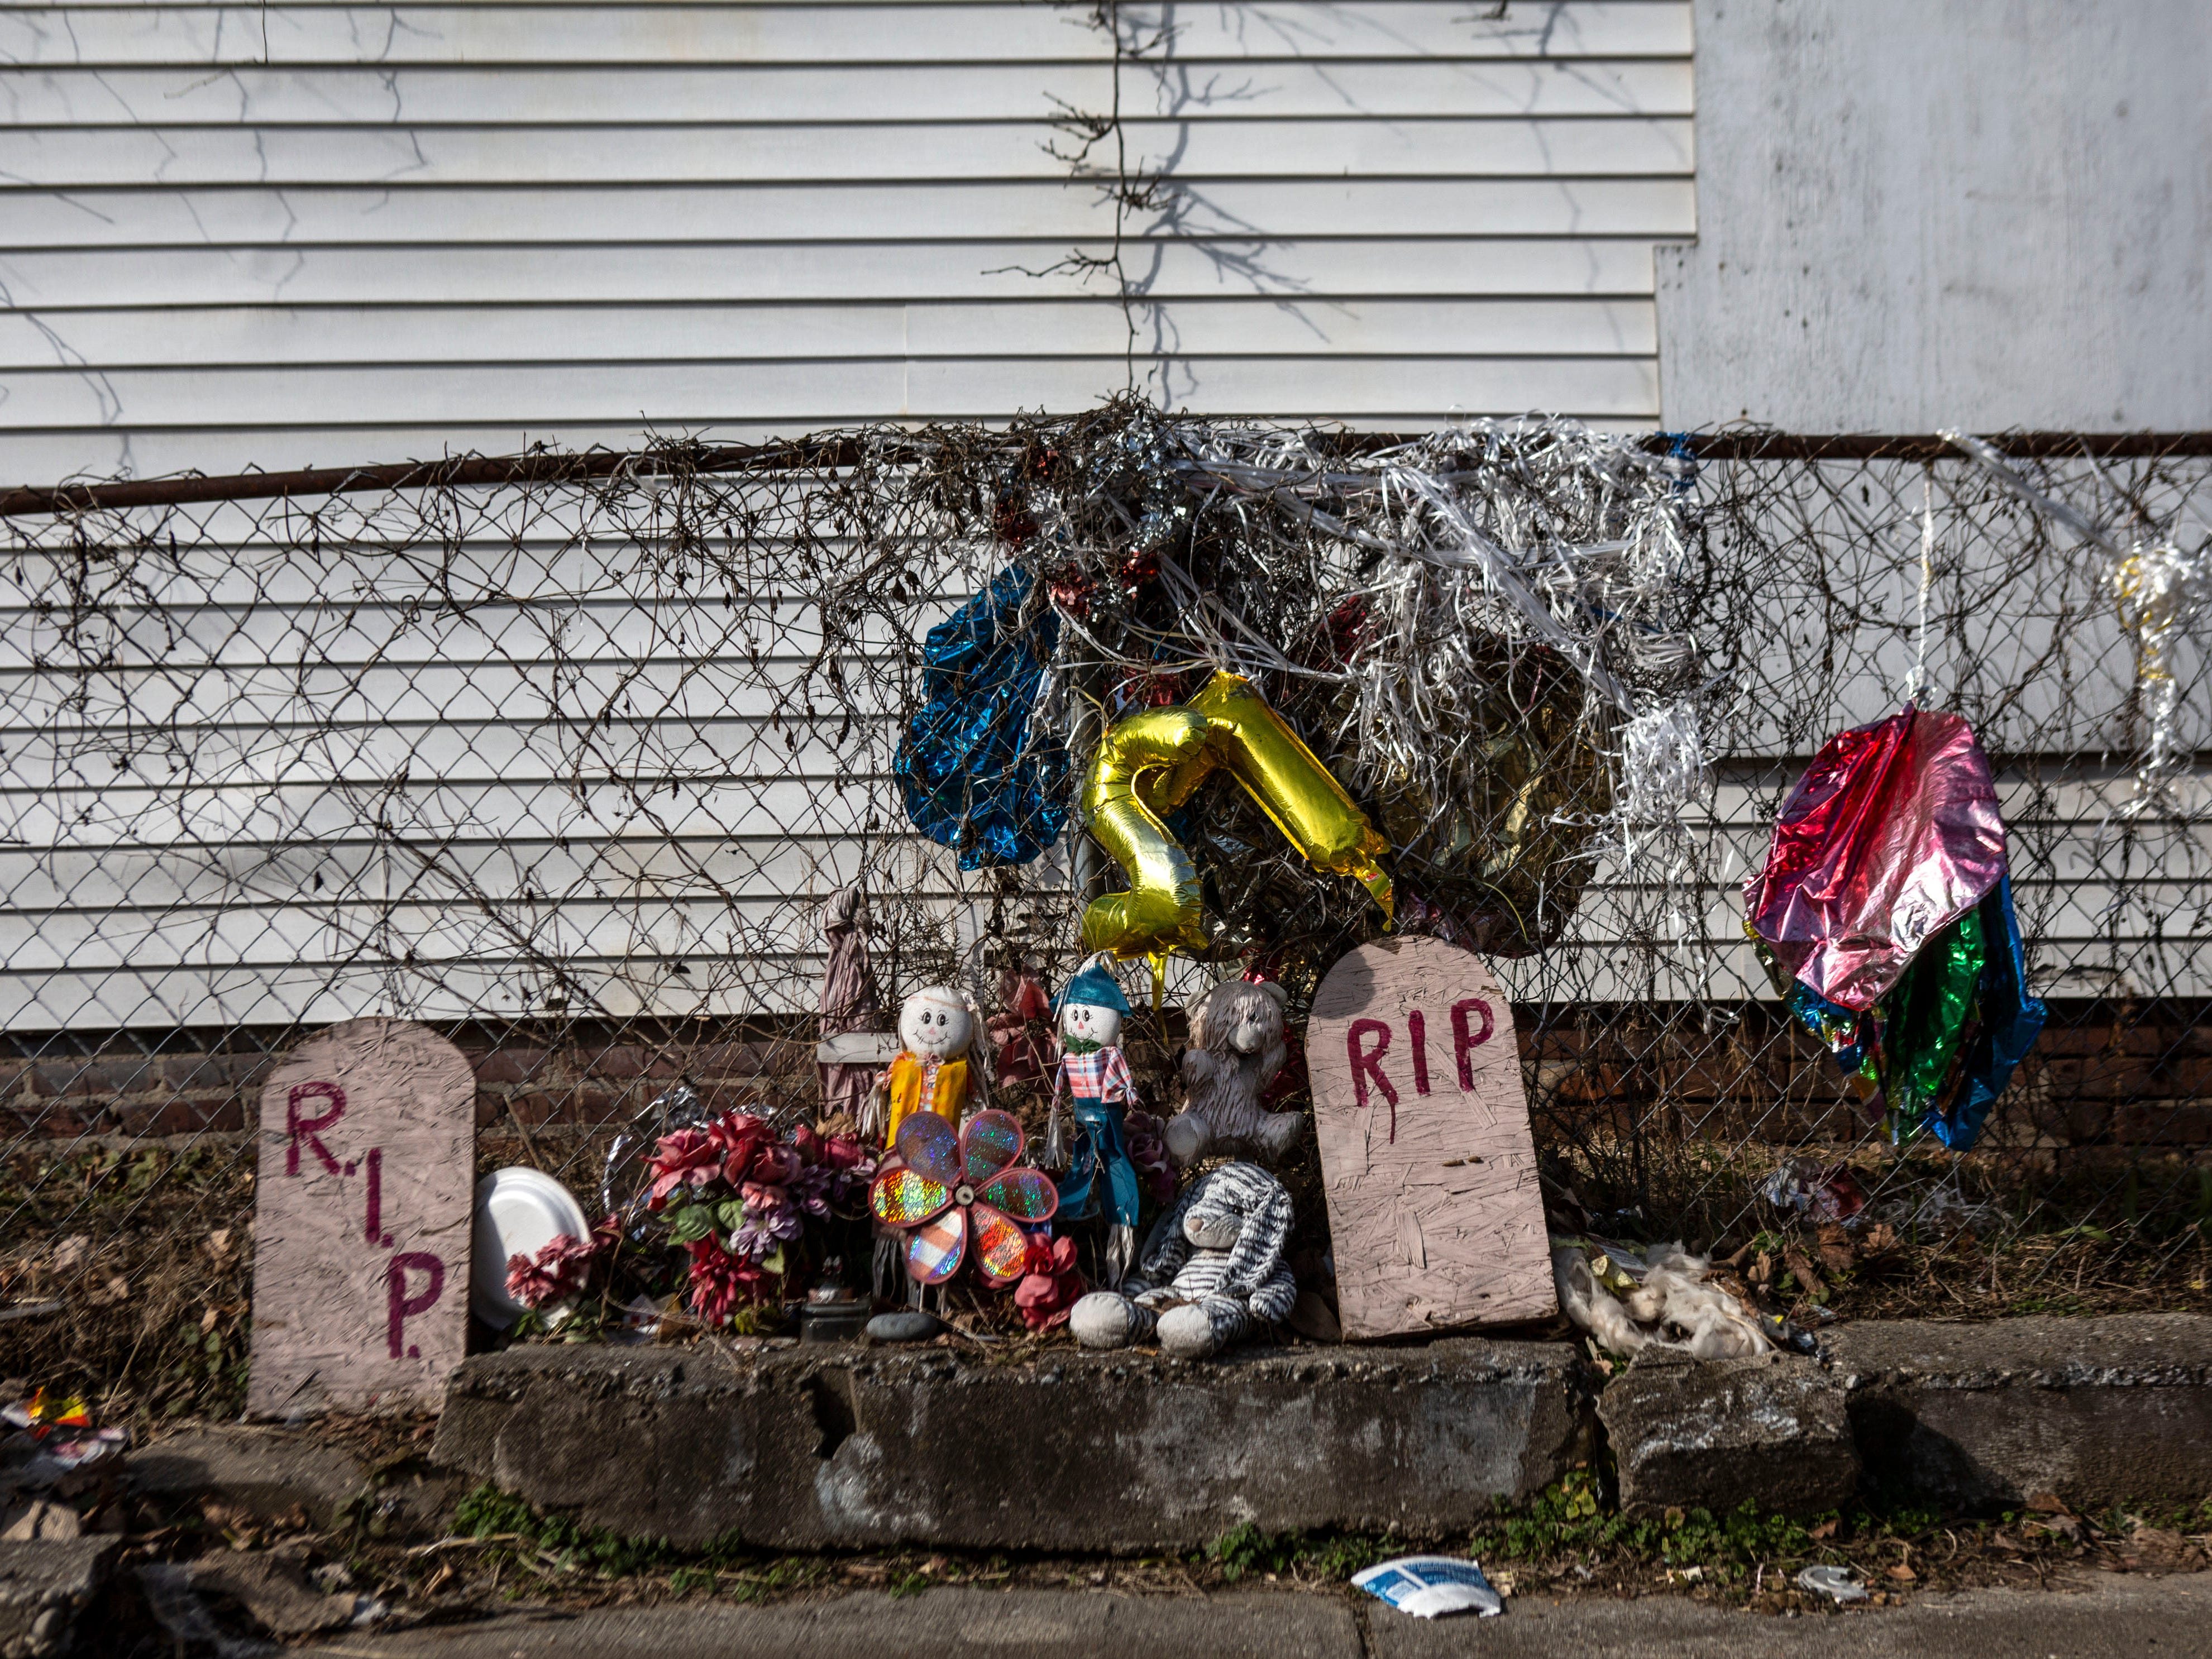 Marcellus Spaulding Jr., 25, was shot and killed in October 2017 at 24th Street near Elliott Avenue, in Louisville's Russell neighborhood. This memorial is thought to have been erected his honor near the site of the shooting. Jan 11, 2019.